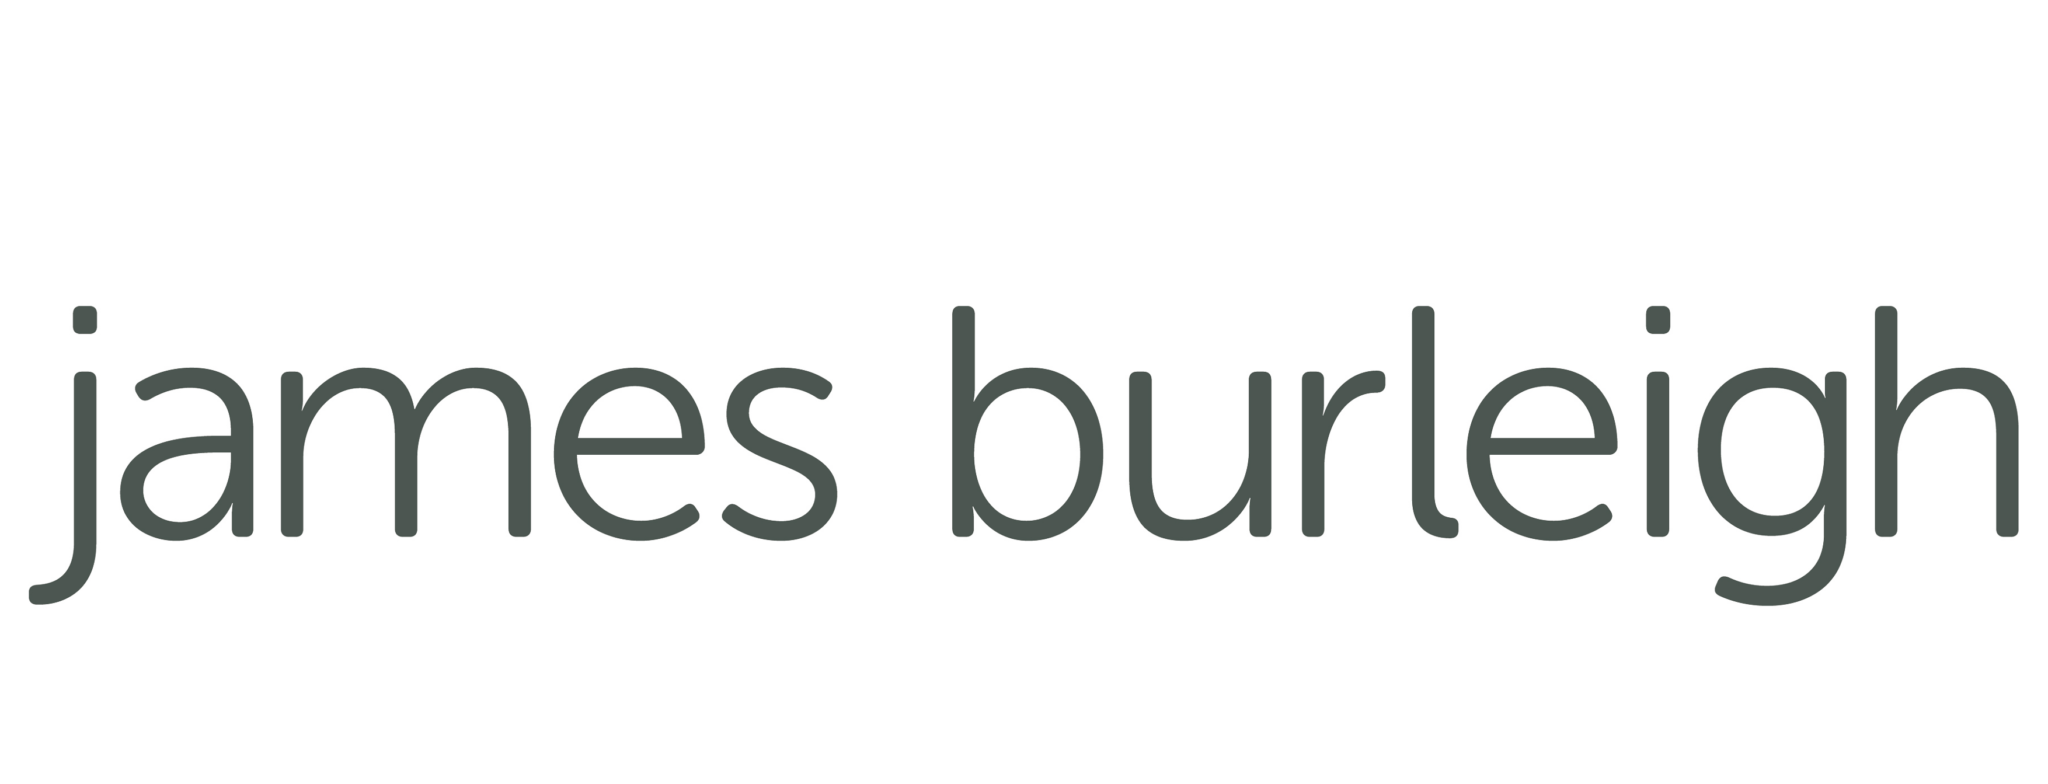 James Burleigh furniture